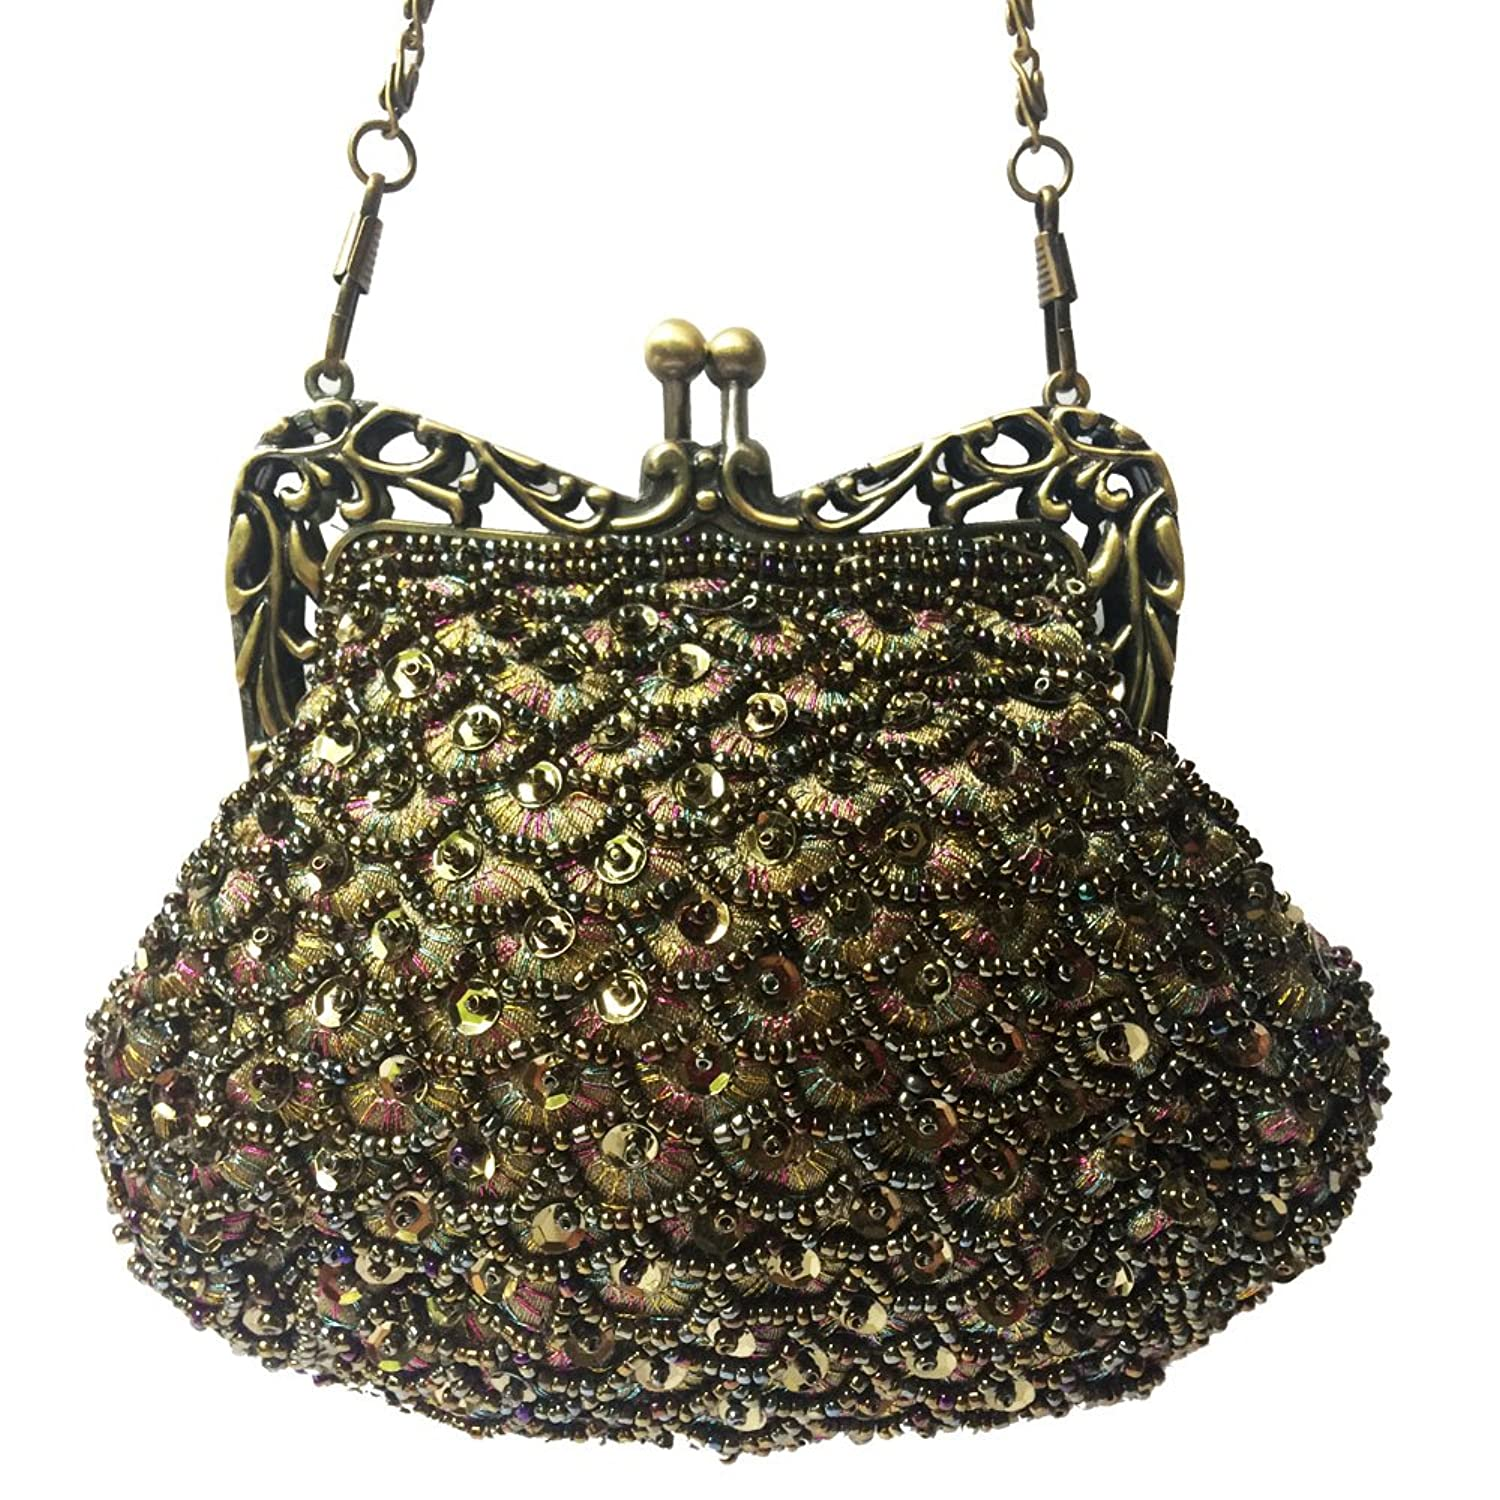 Great Gatsby Style Fully Beaded Vintage Evening Bag Party Clutch Small Coin Purse (olive) $19.97 AT vintagedancer.com